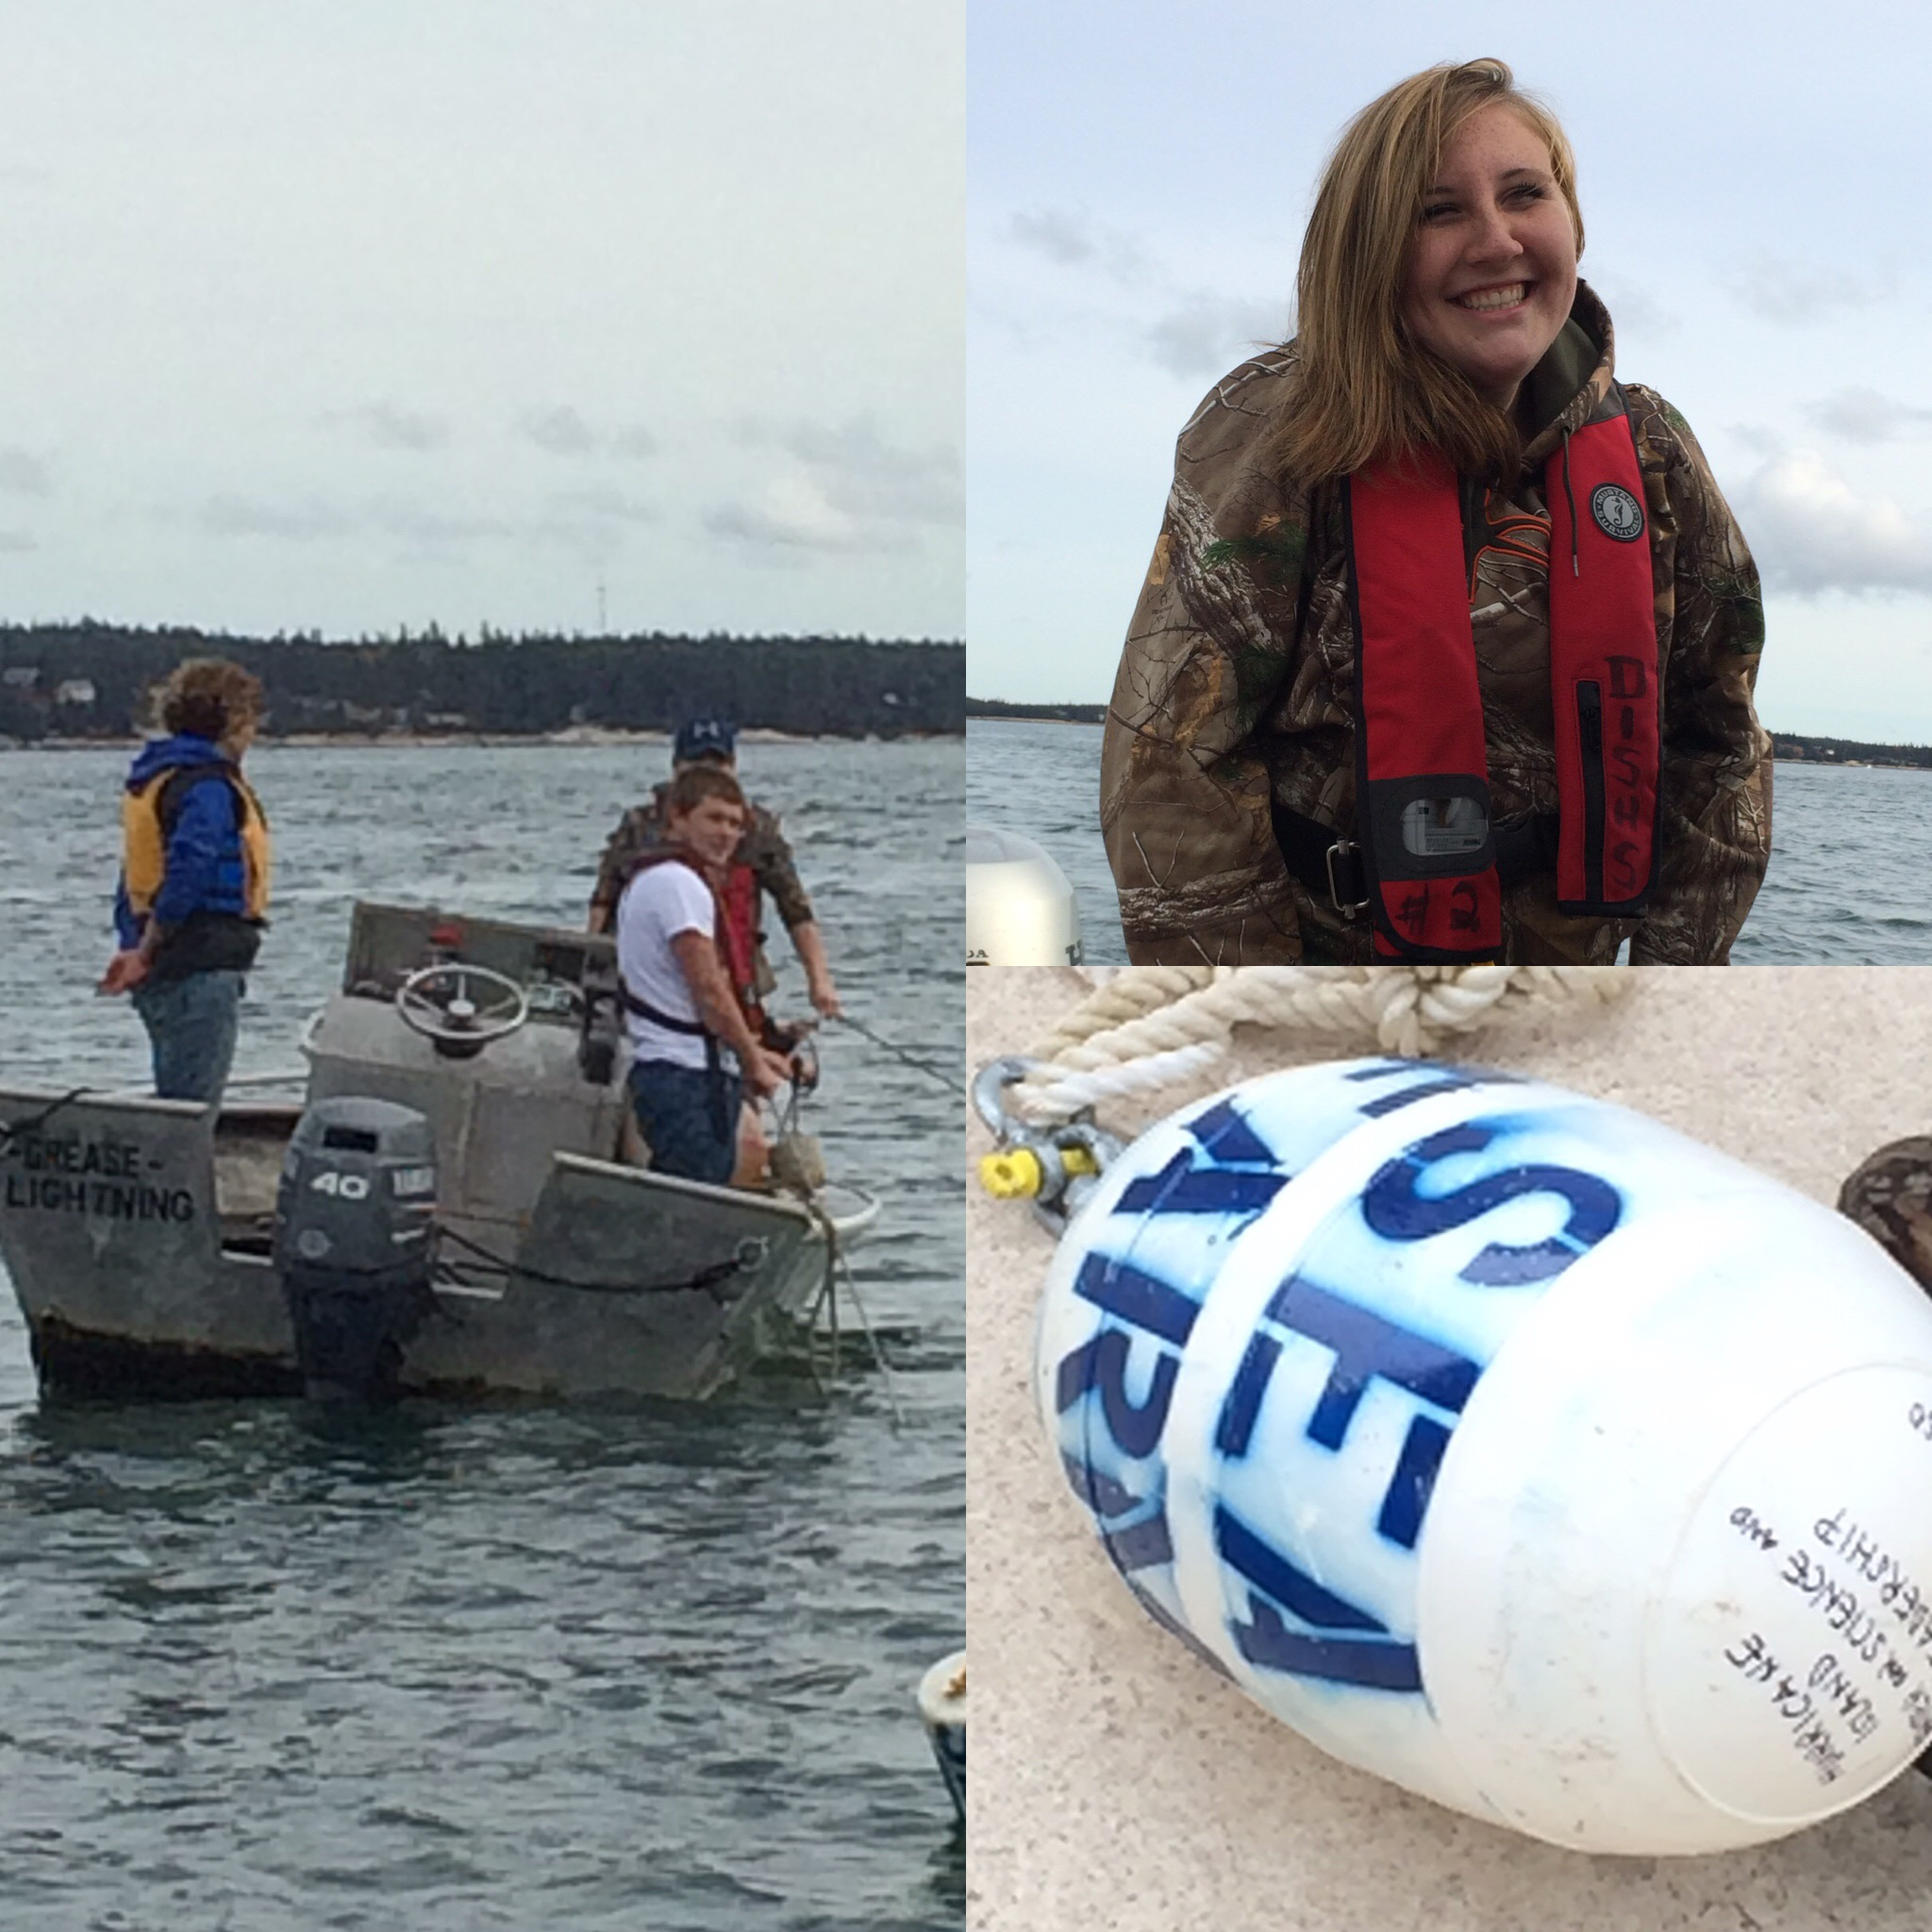 A great day on the water putting our new sea farm in the water